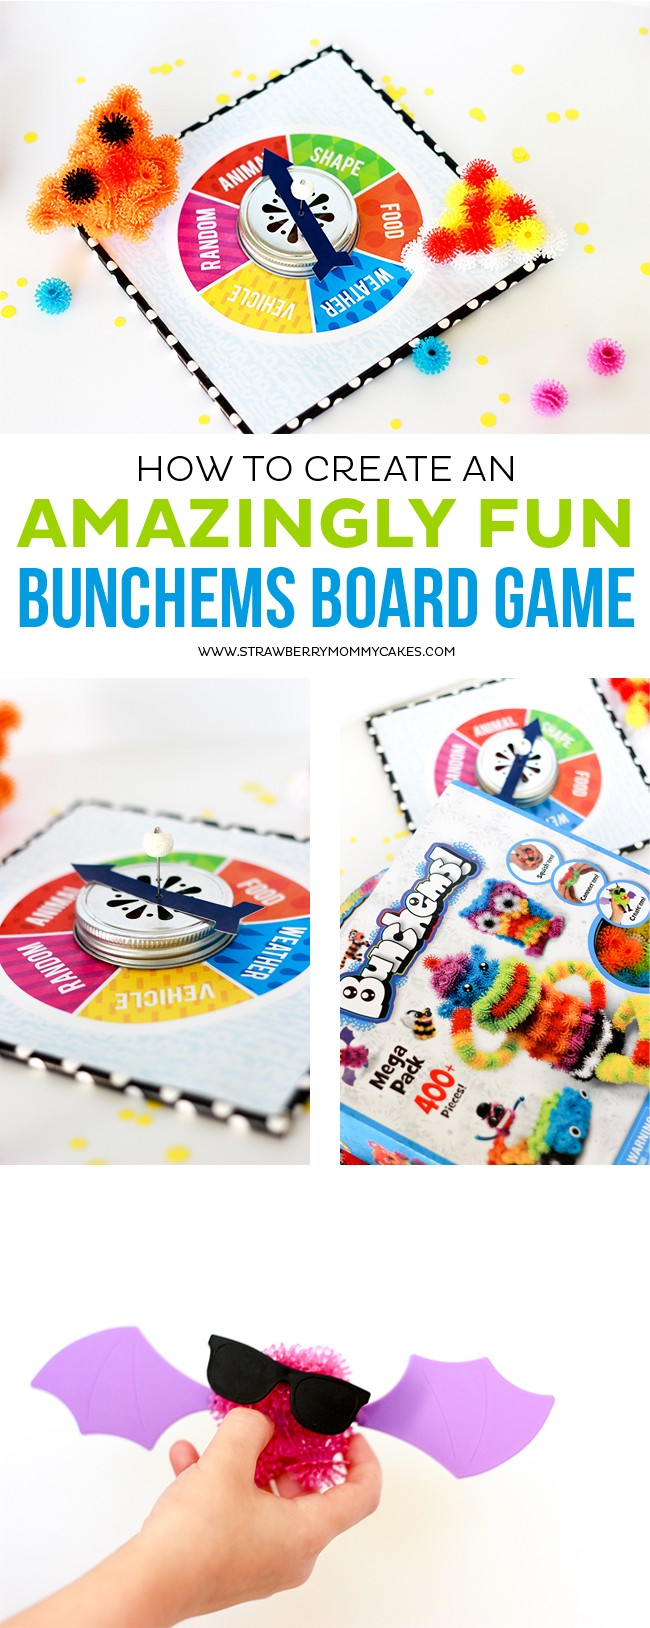 How to Create an AMAZINGLY fun Bunchems Board Game for young kids.